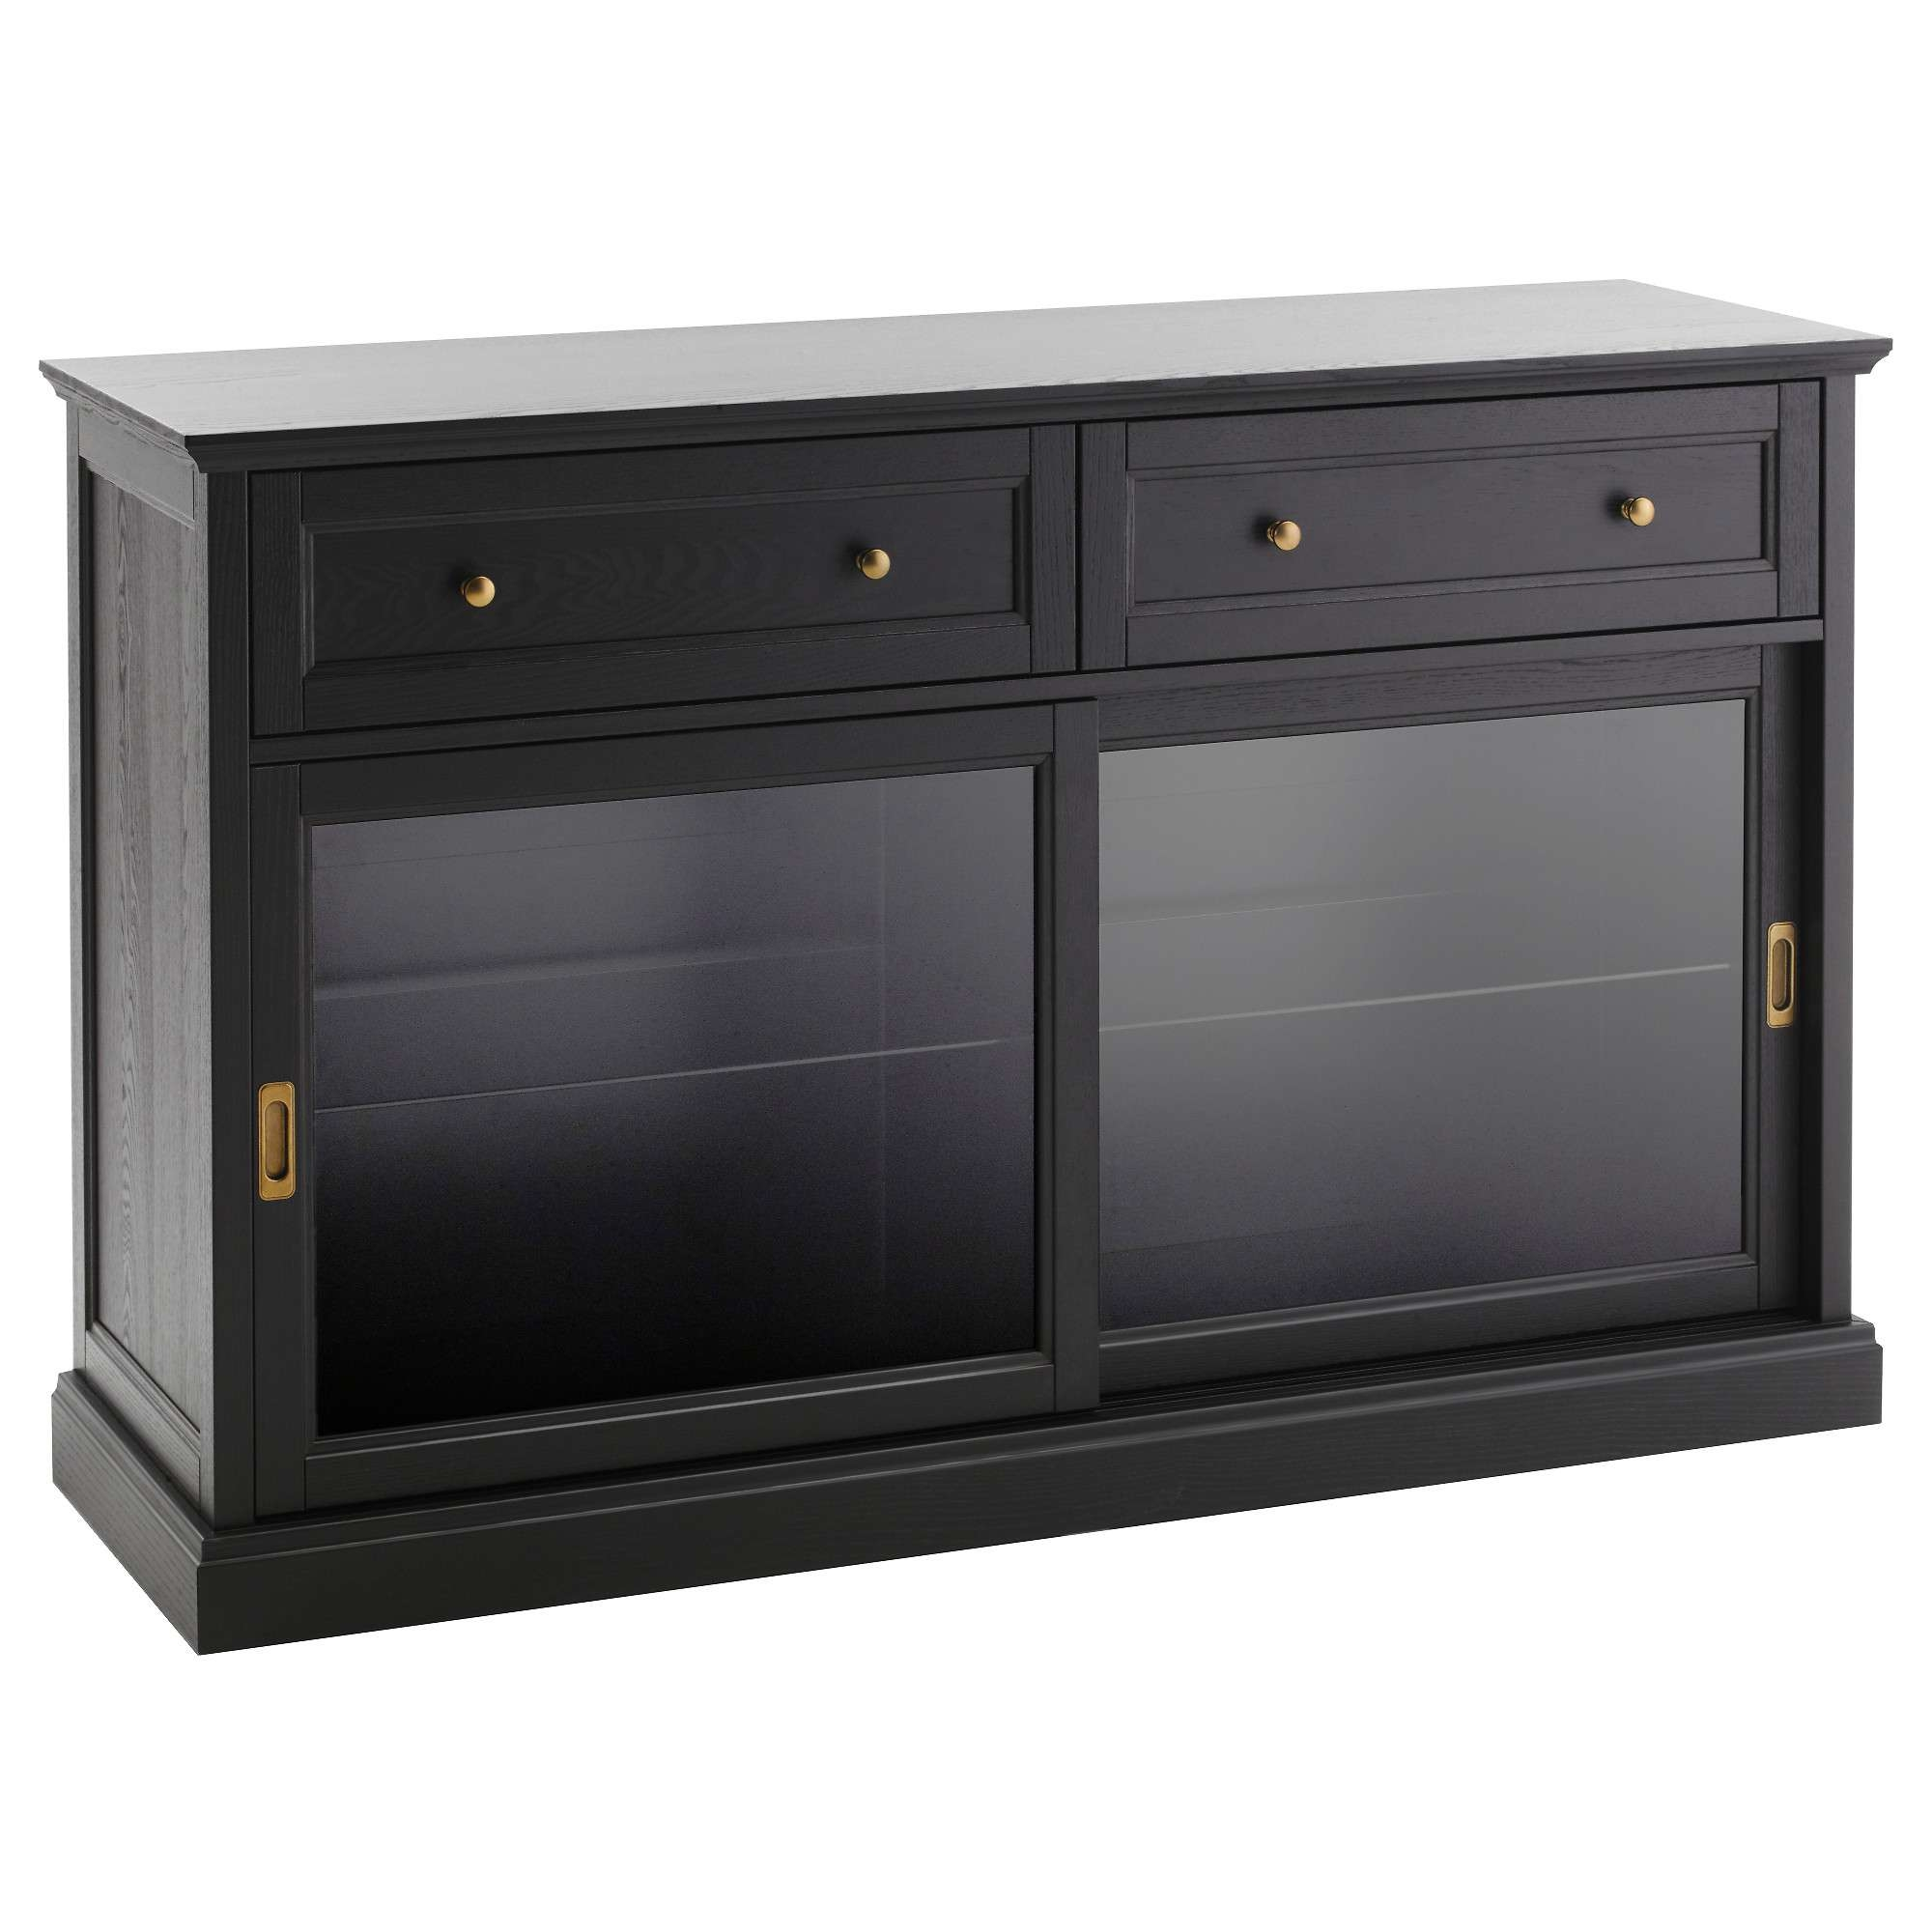 Unique Black Sideboard Buffet – Bjdgjy Inside Narrow Sideboards And Buffets (View 17 of 20)